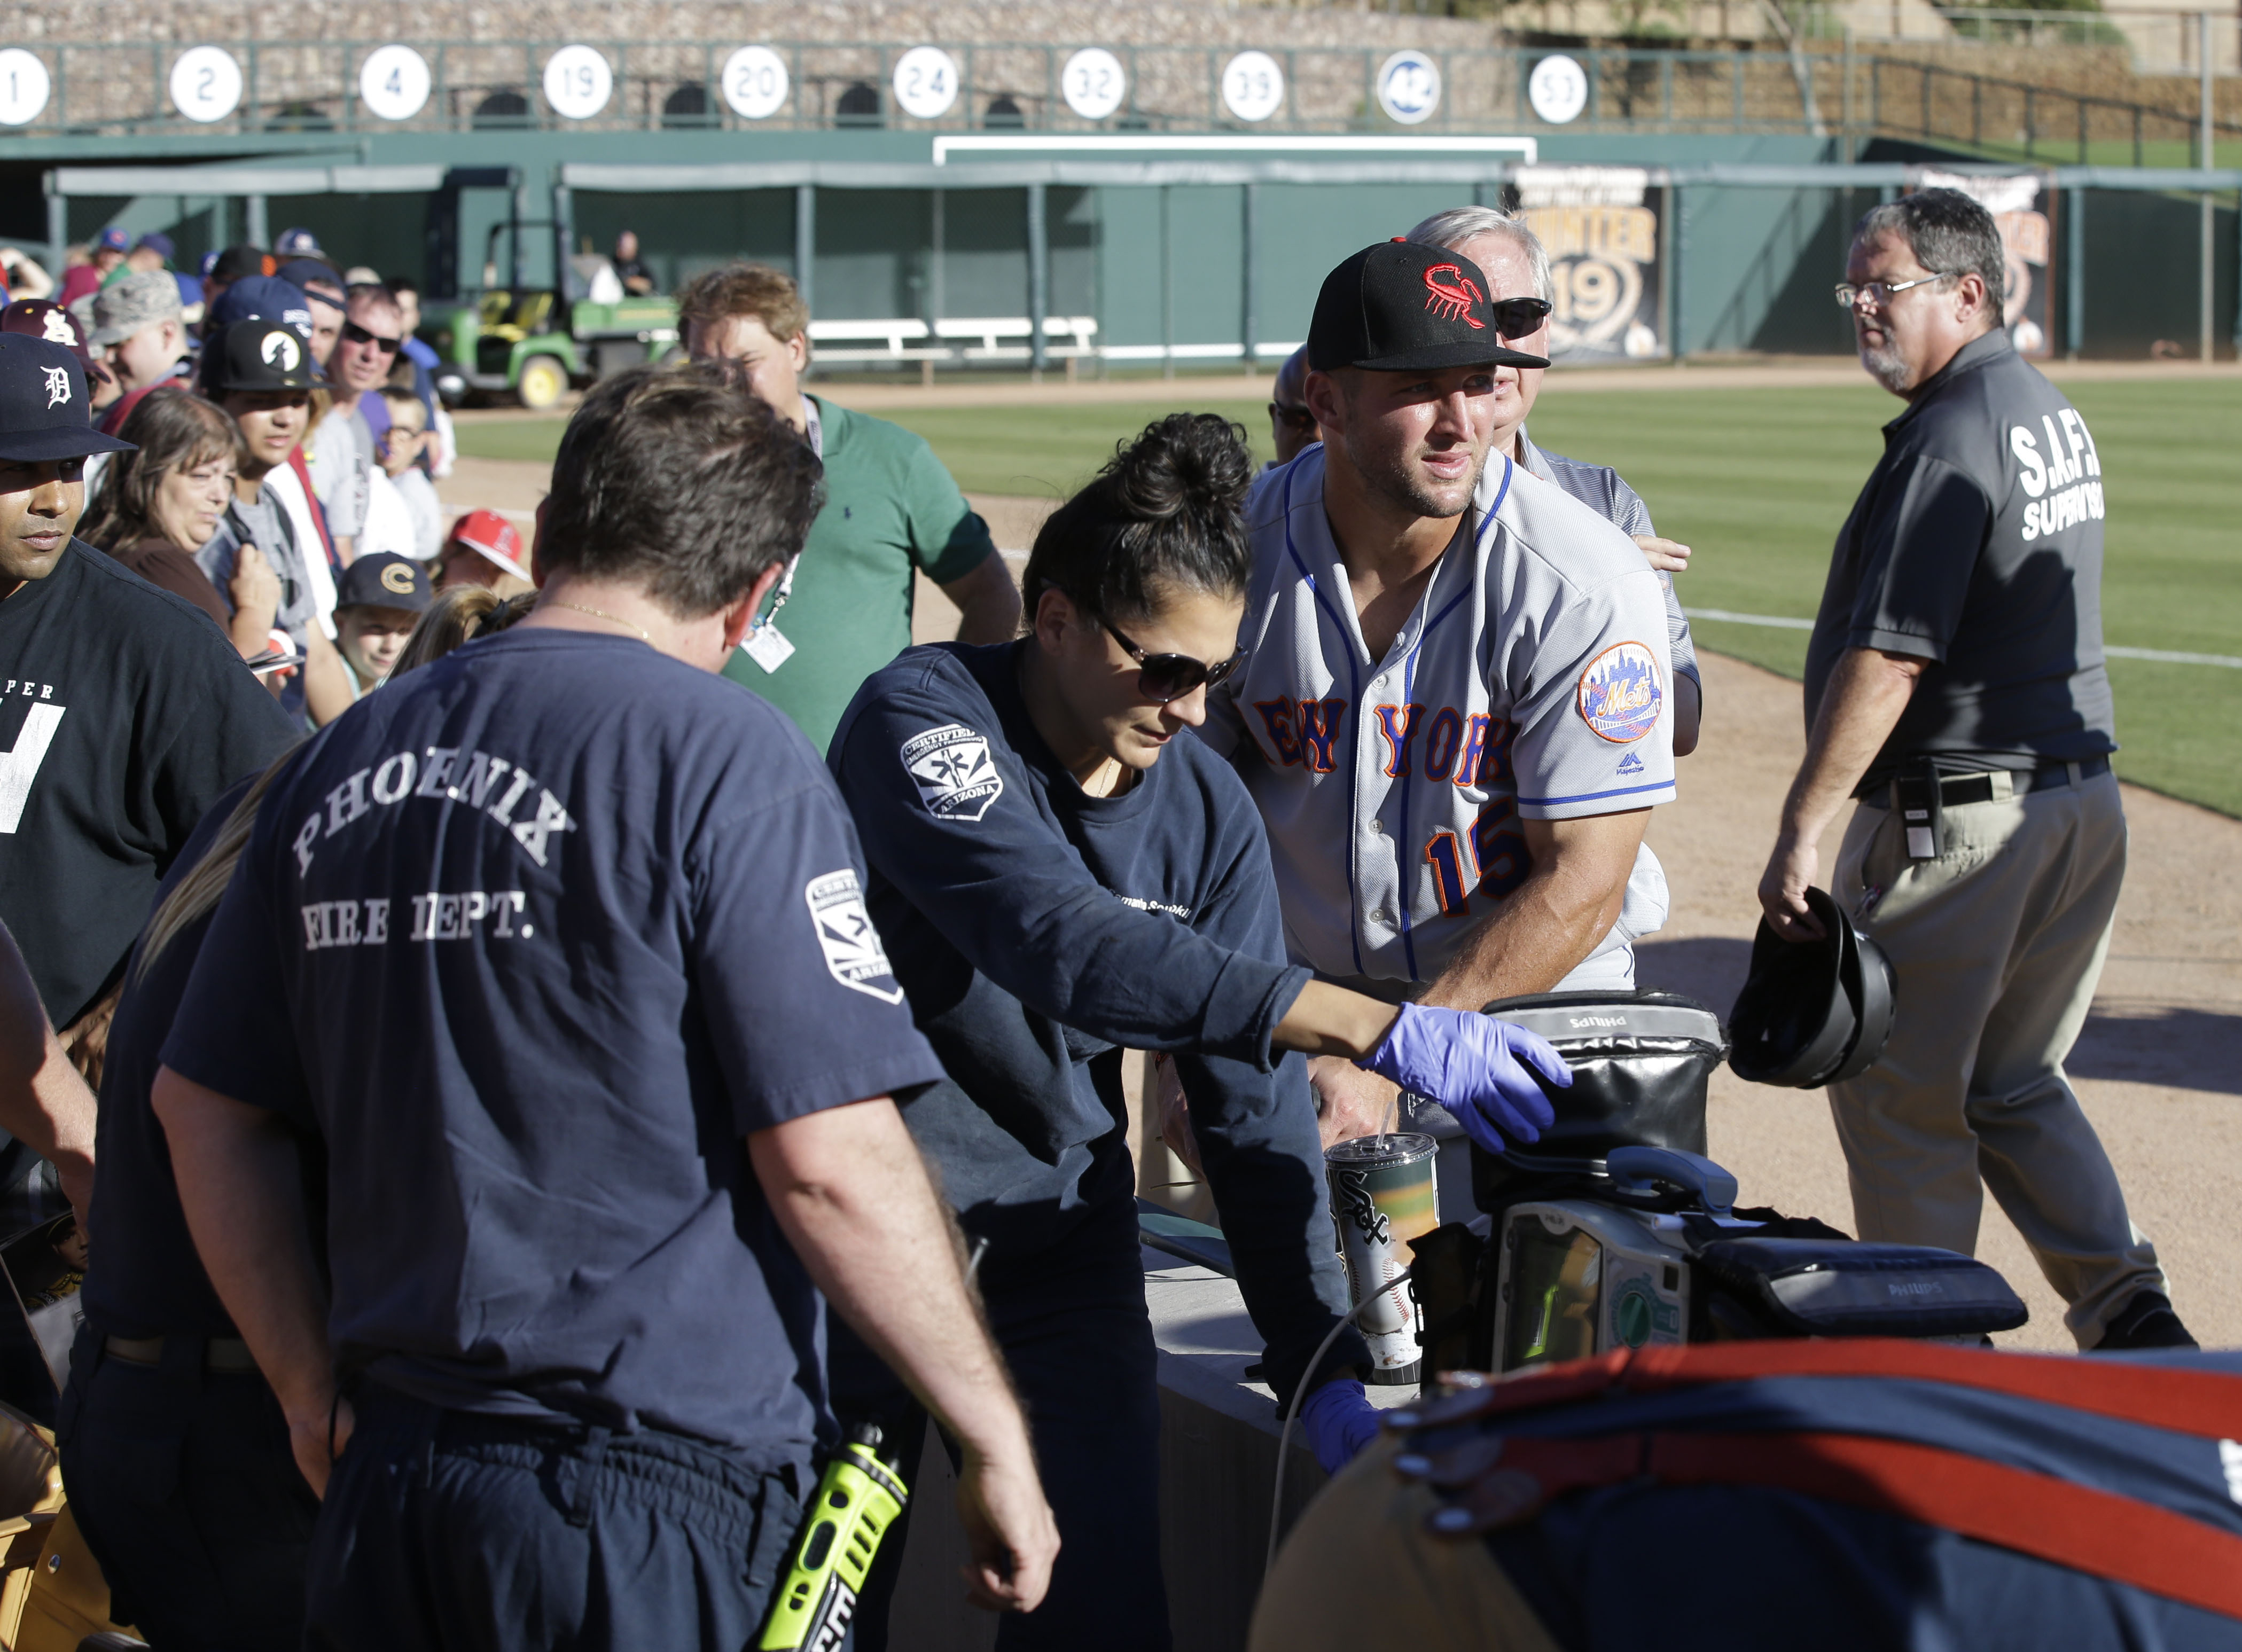 Scottsdale Scorpions outfielder Tim Tebow, center, comforts a fan, on ground, who was suffering a seizure, following Tebow's debut against the Glendale Desert Dogs in a baseball game Tuesday, Oct. 11, 2016, during the Arizona Fall League in Glendale, Ariz